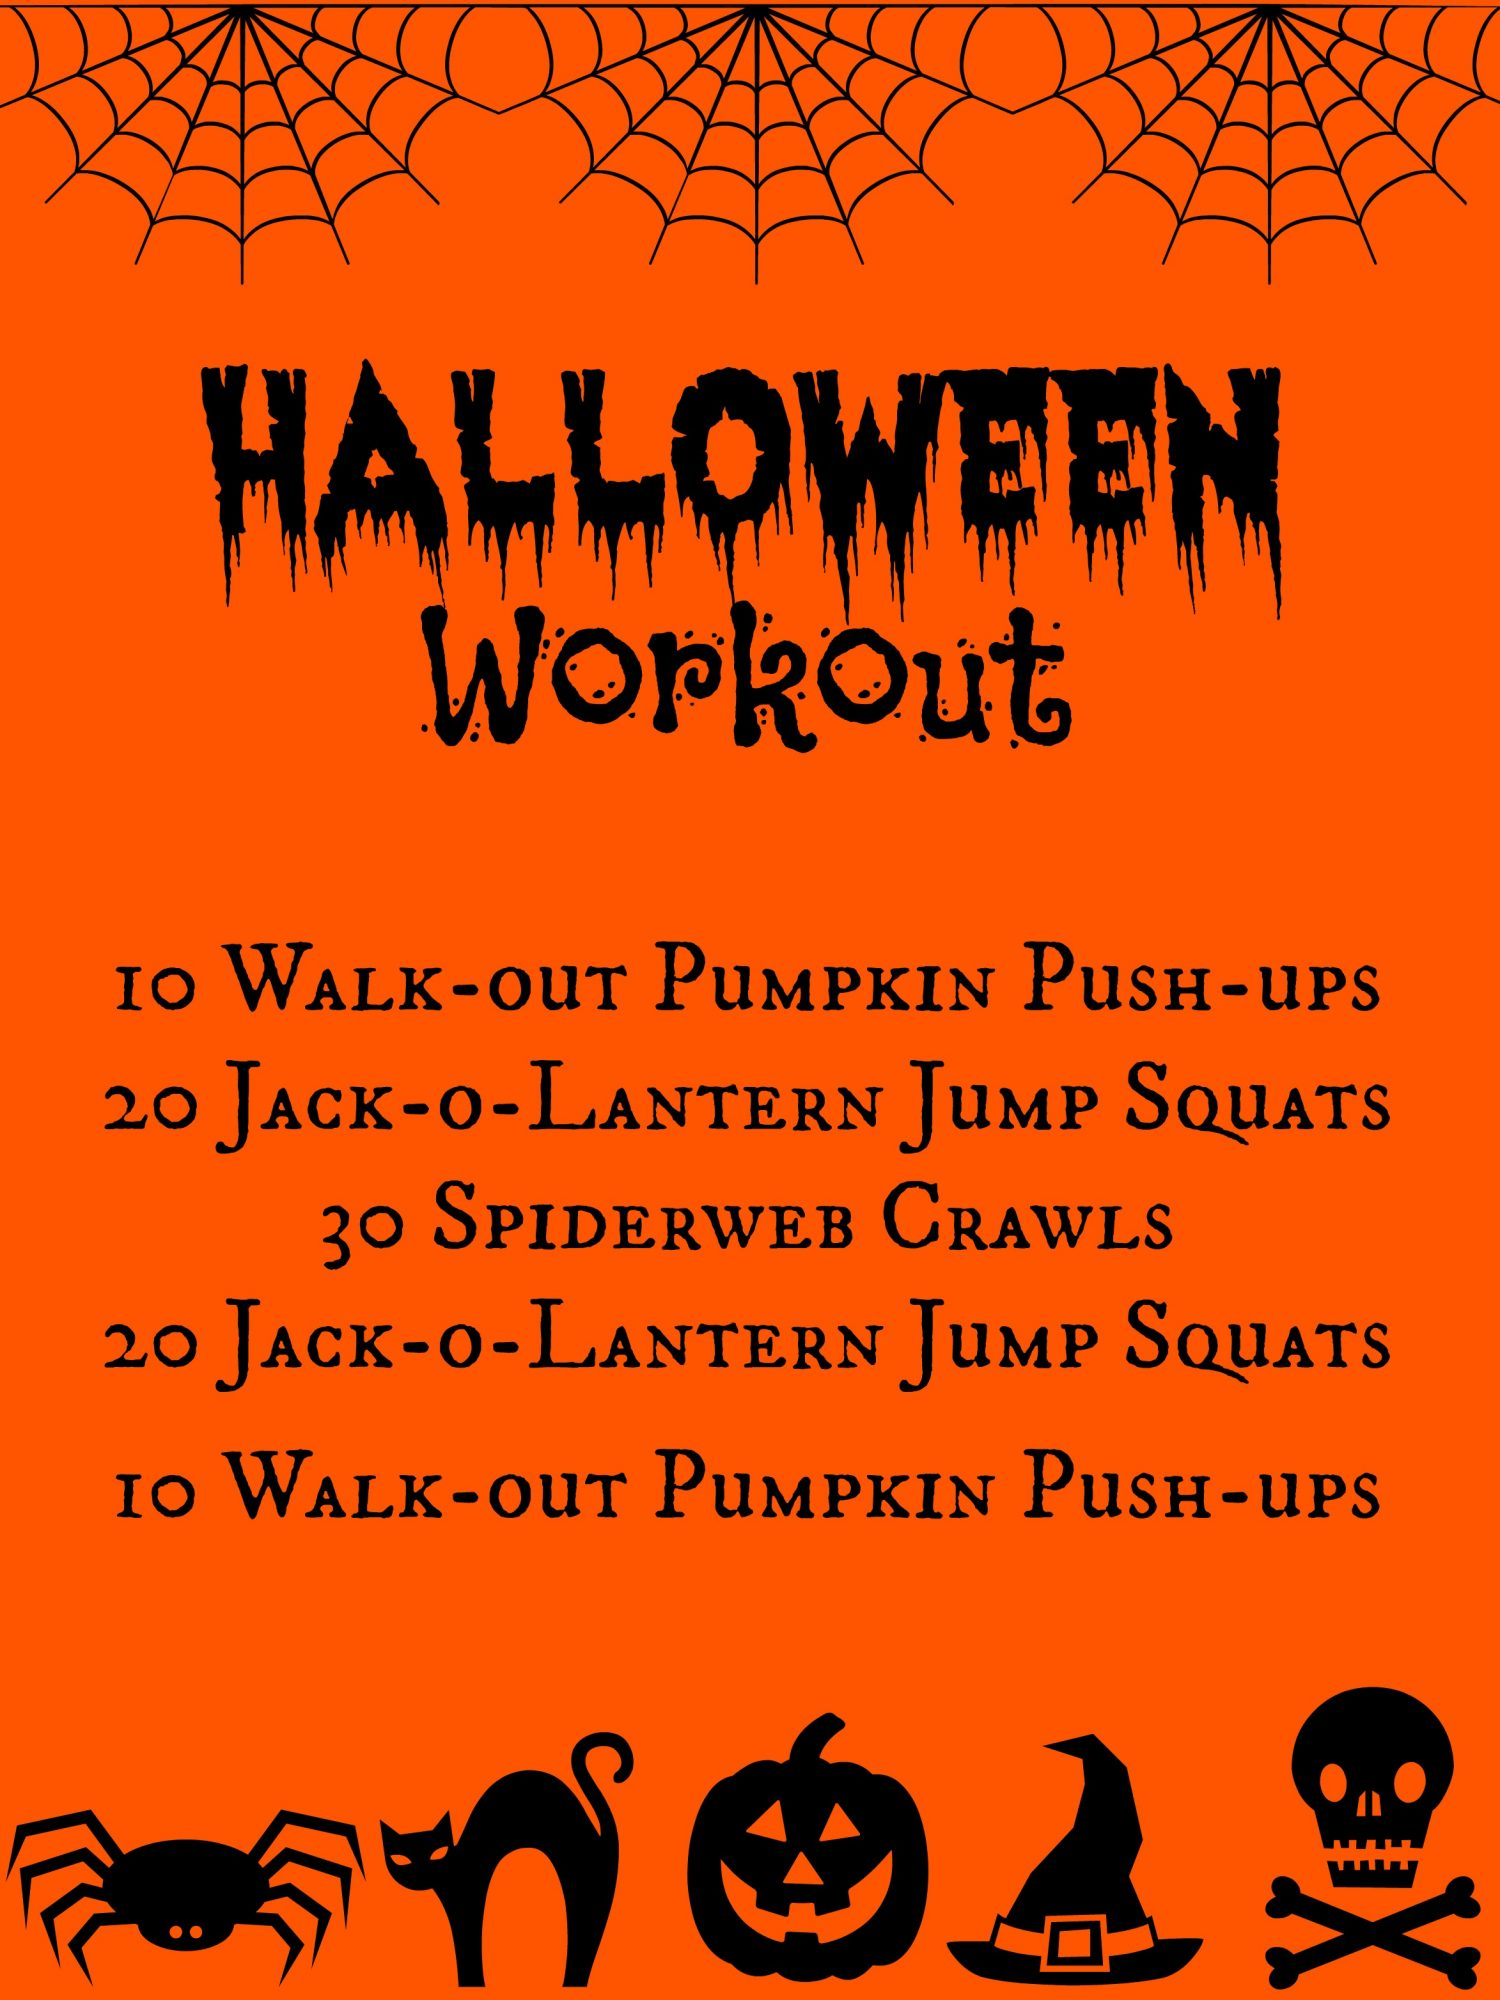 walk out pumpkin push ups - Show Me Halloween Pictures